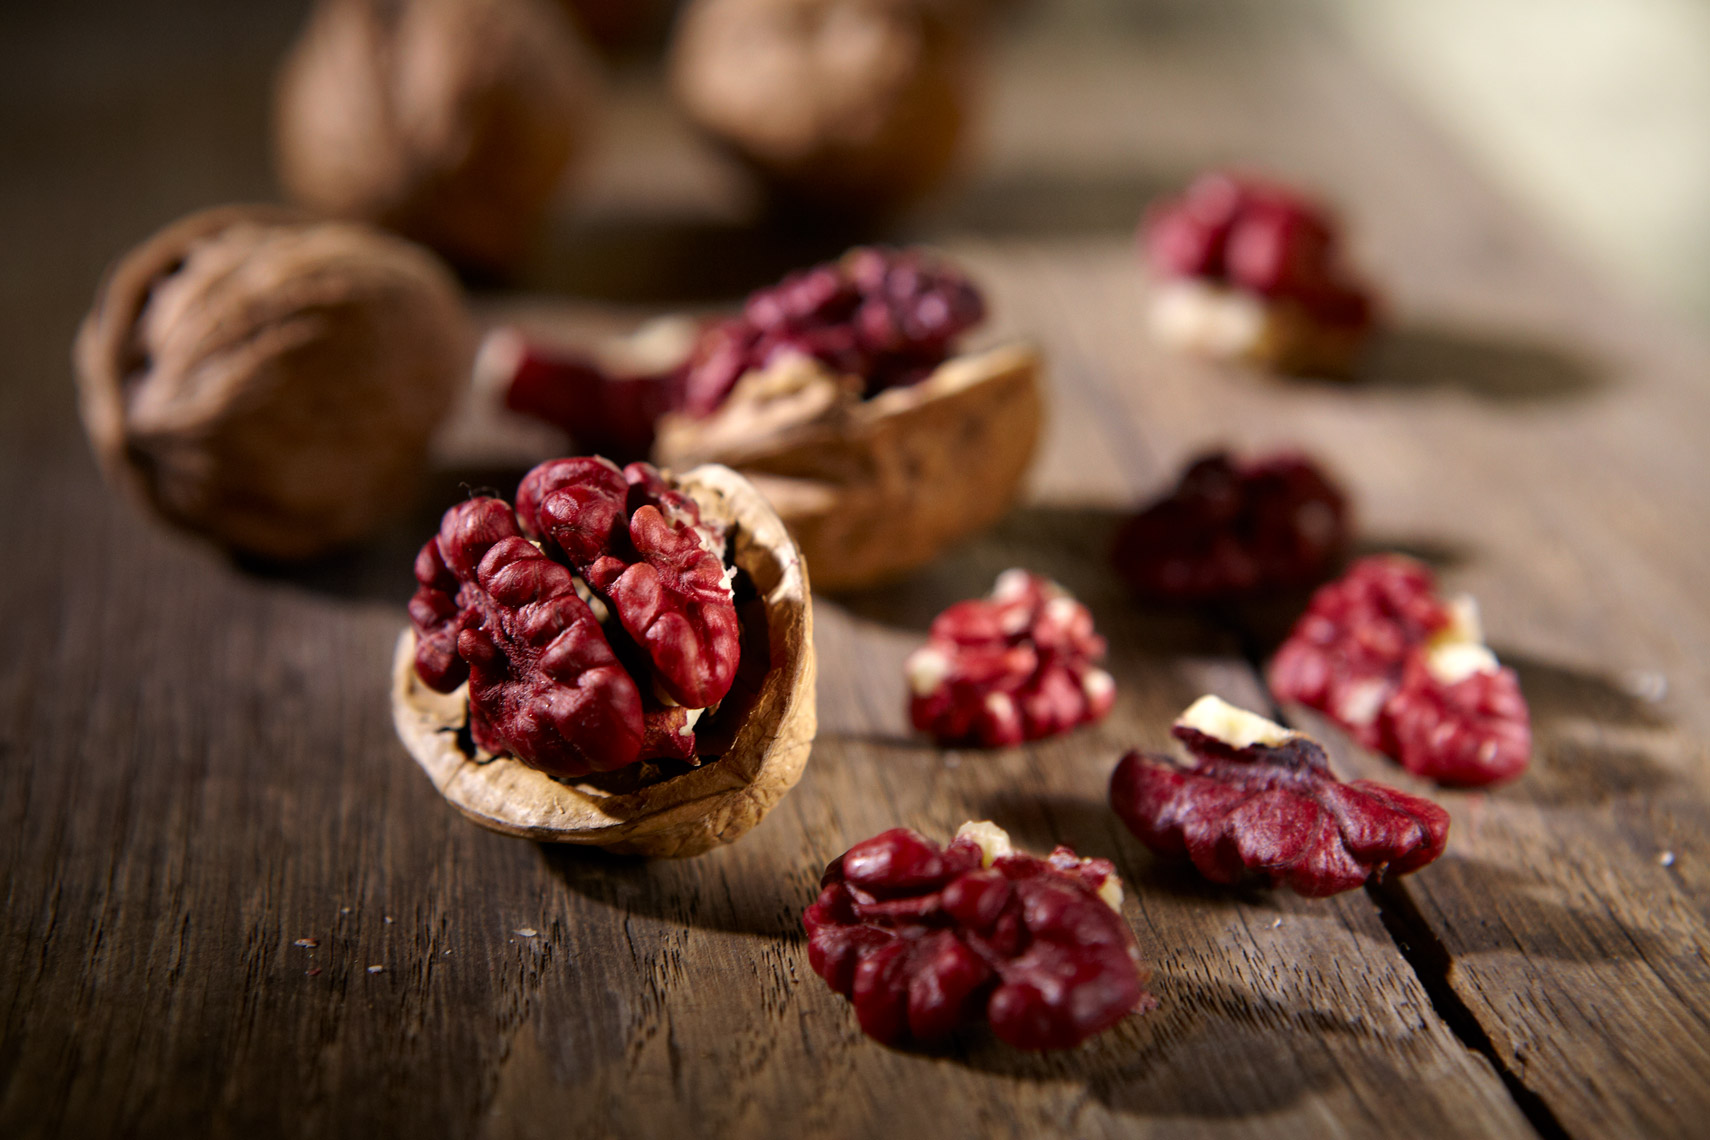 AlanCampbellPhotography, Red Walnuts